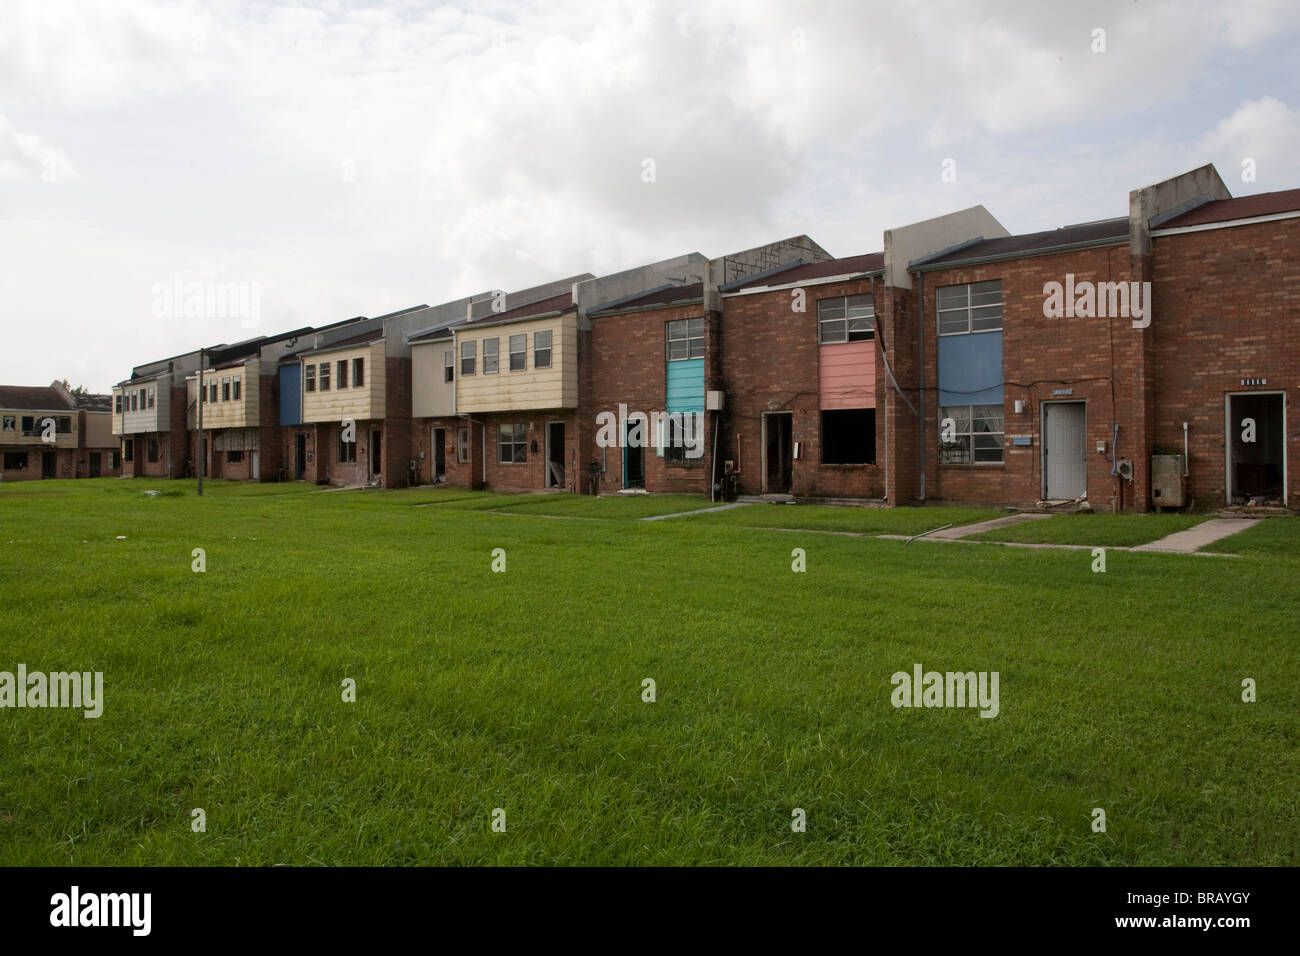 Blighted housing in New Orlean's Ninth Ward neighborhood has changed little since Hurricane Katrina. - Stock Image